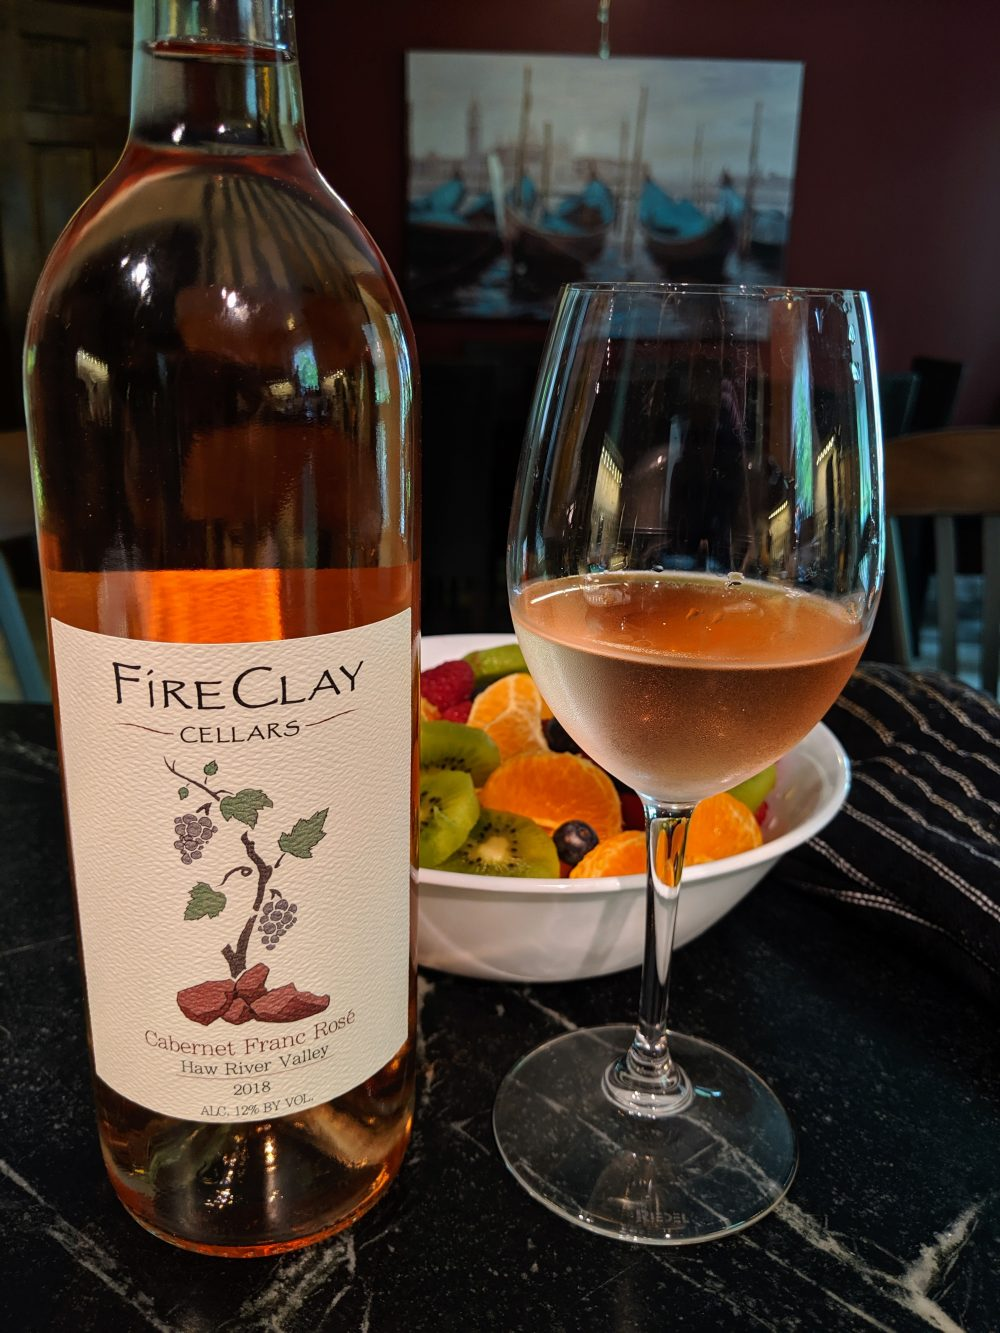 Cabernet Franc Rose NC Winery and Vineyard FireClay cellars